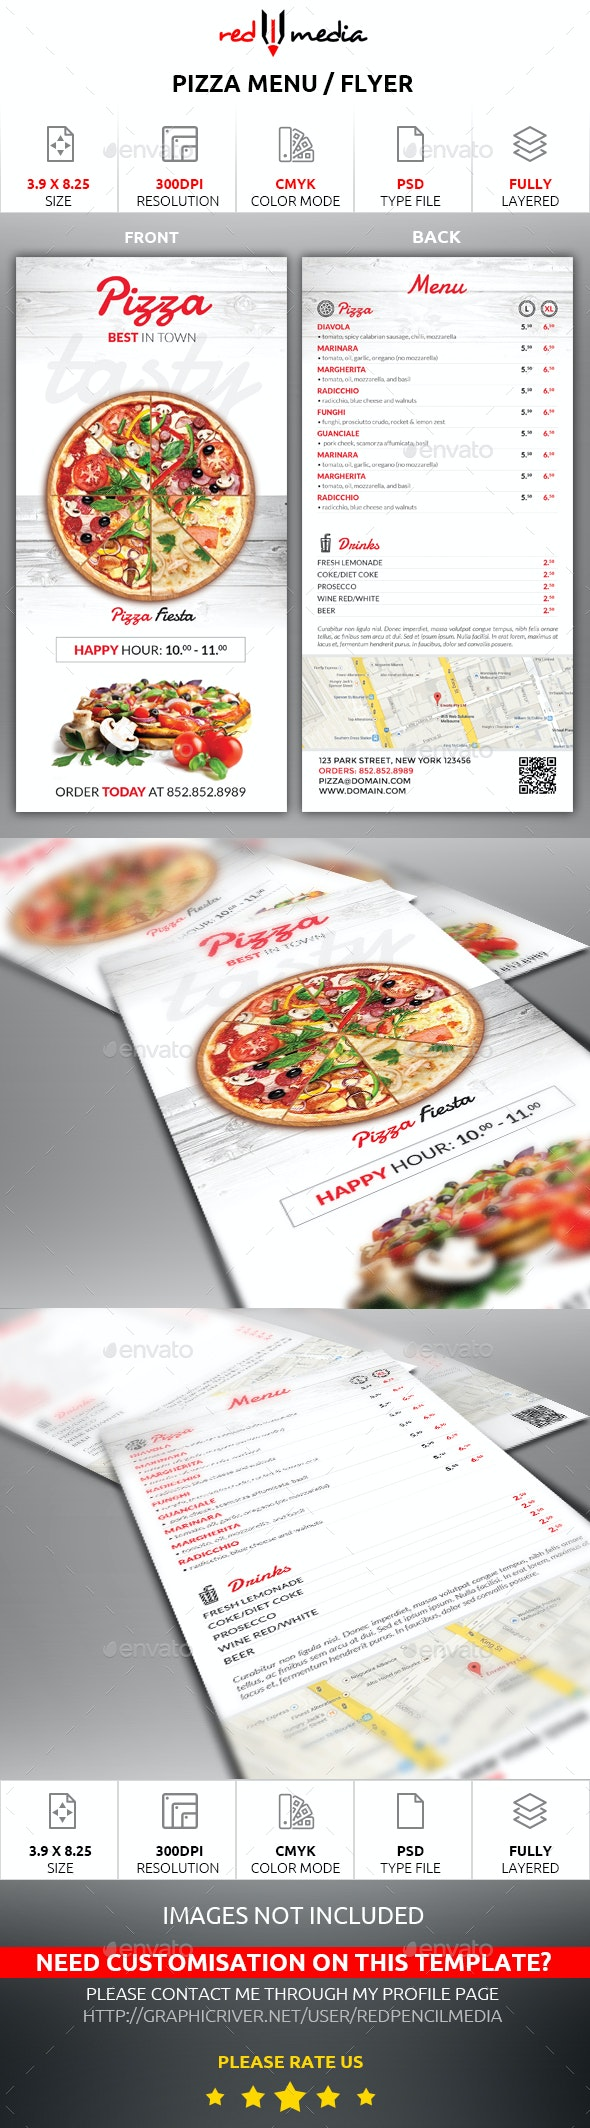 Pizza Menu / Flyer - Restaurant Flyers